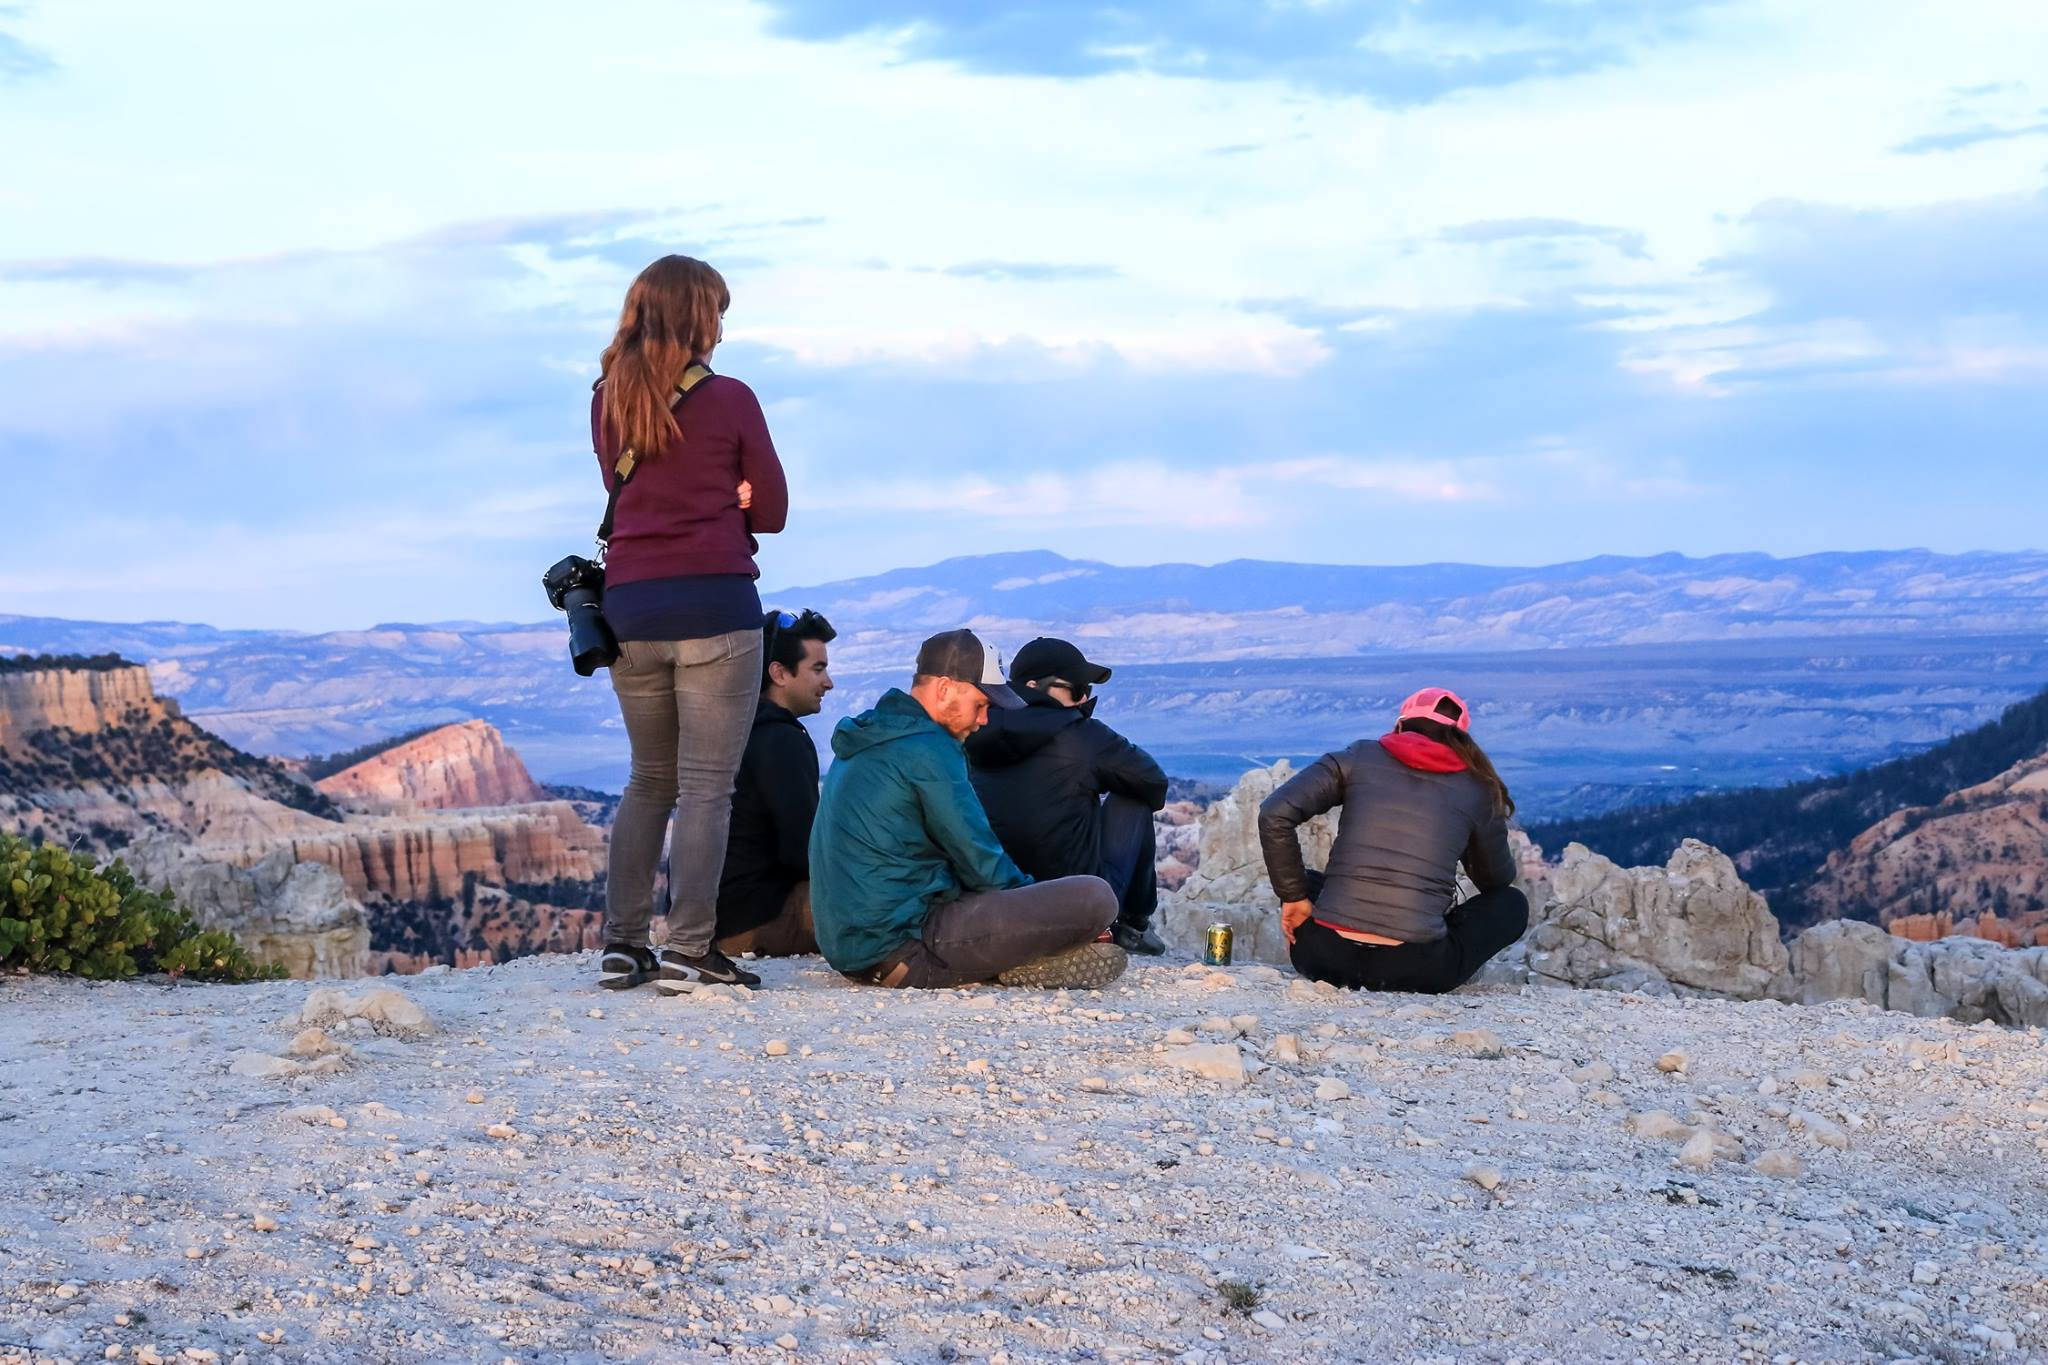 maggie-kirkland-yakima-brand-product-photoshoot-bryce-canyon-national-park-sunrise.jpg